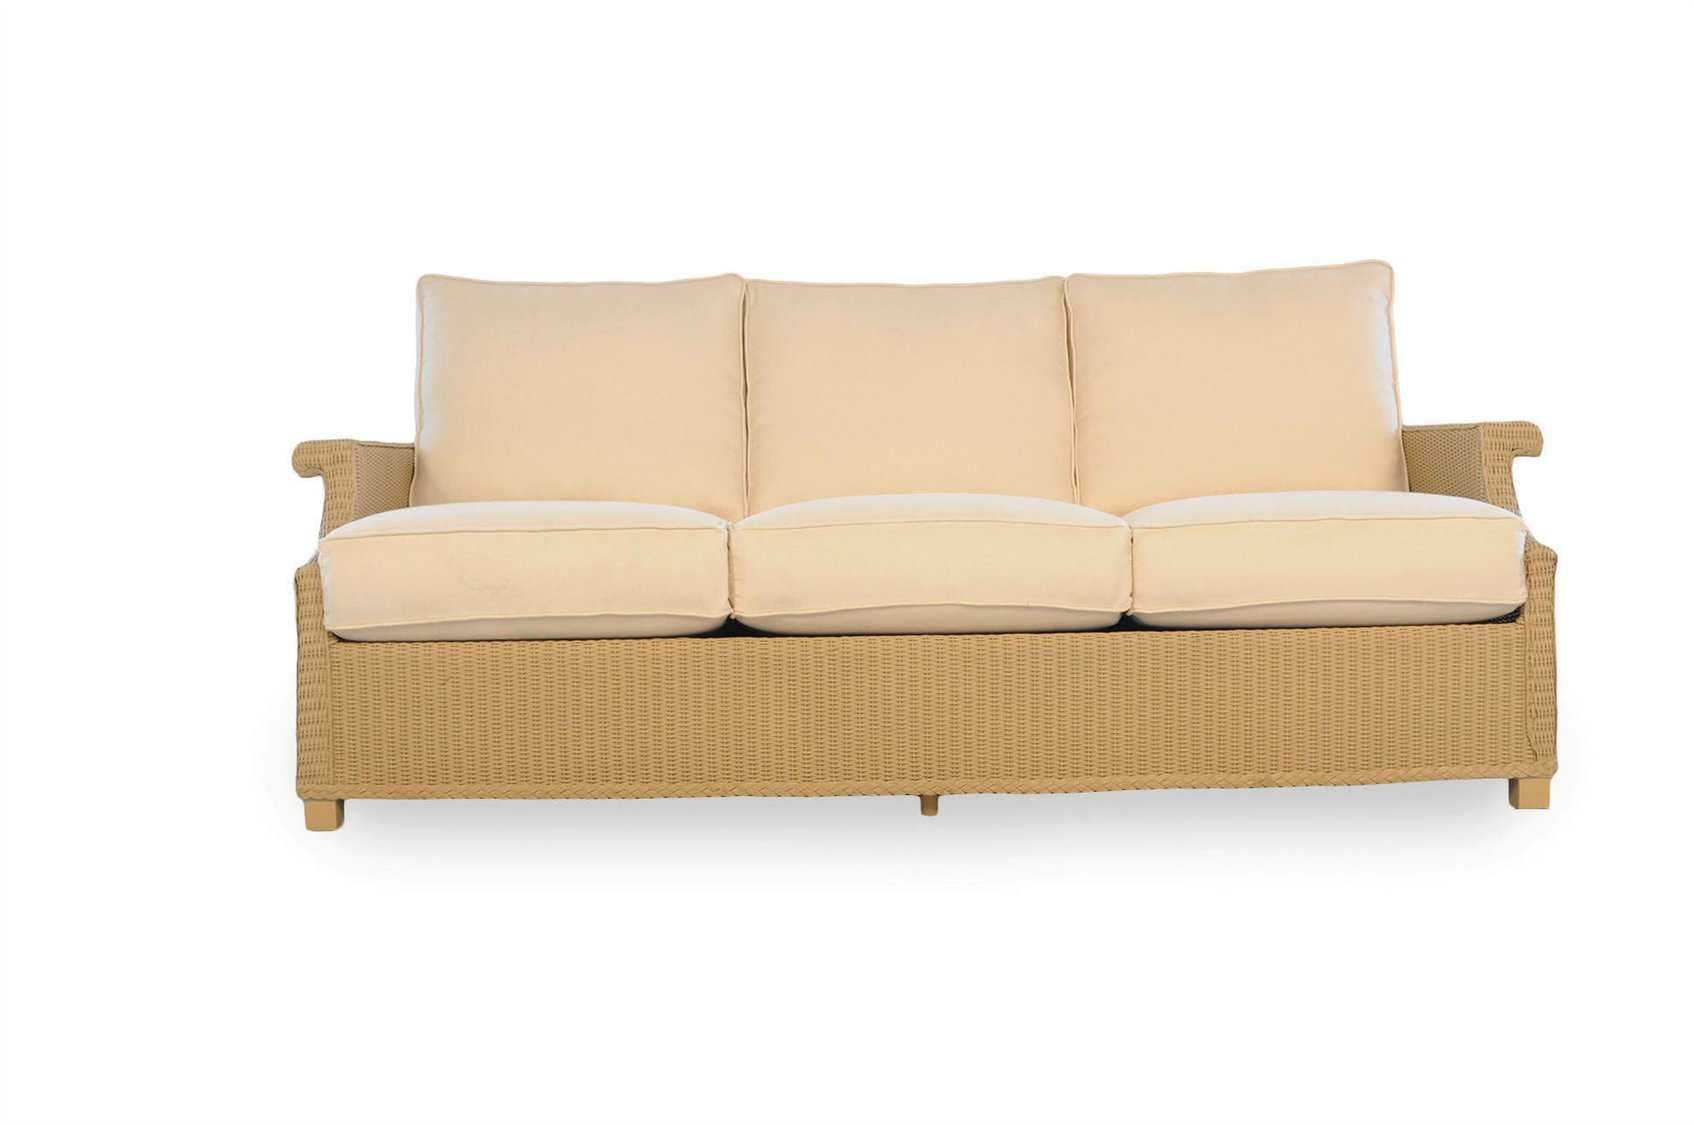 replacement cushions for sofa backs long sectional with chaise lloyd flanders hamptons back cushion